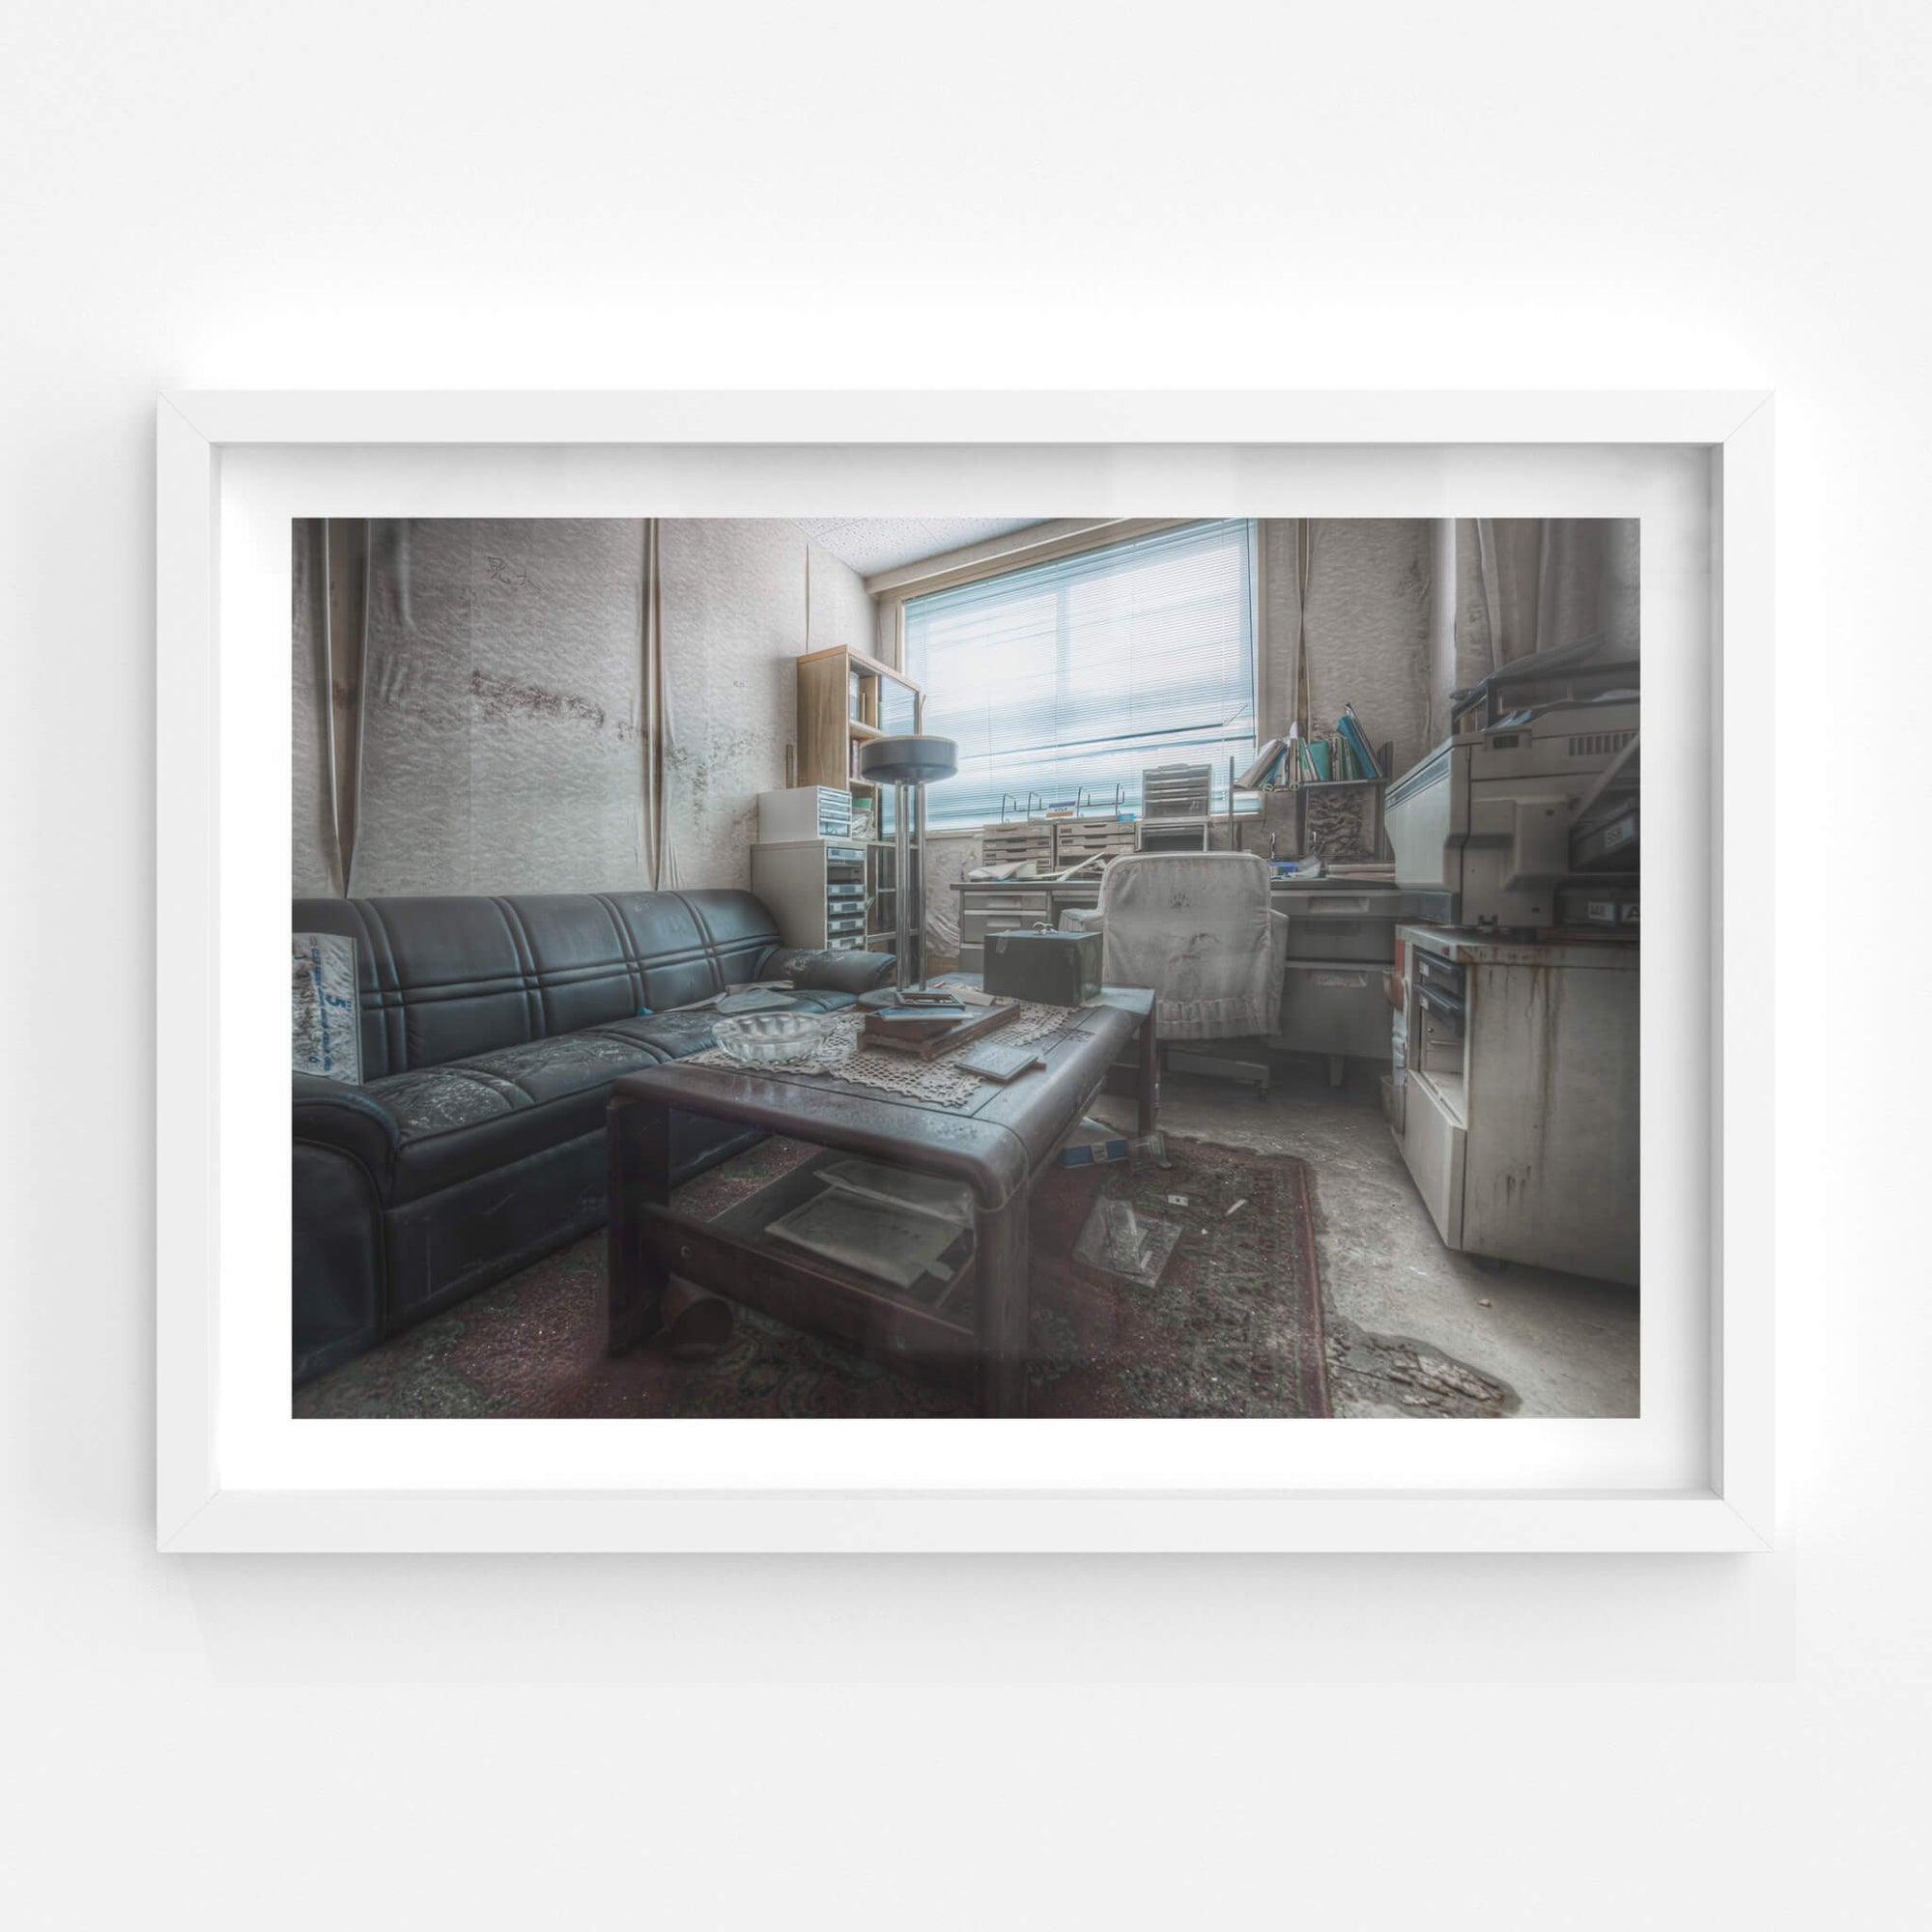 Doctors Office | Kuwashima Hospital Fine Art Print - Lost Collective Shop